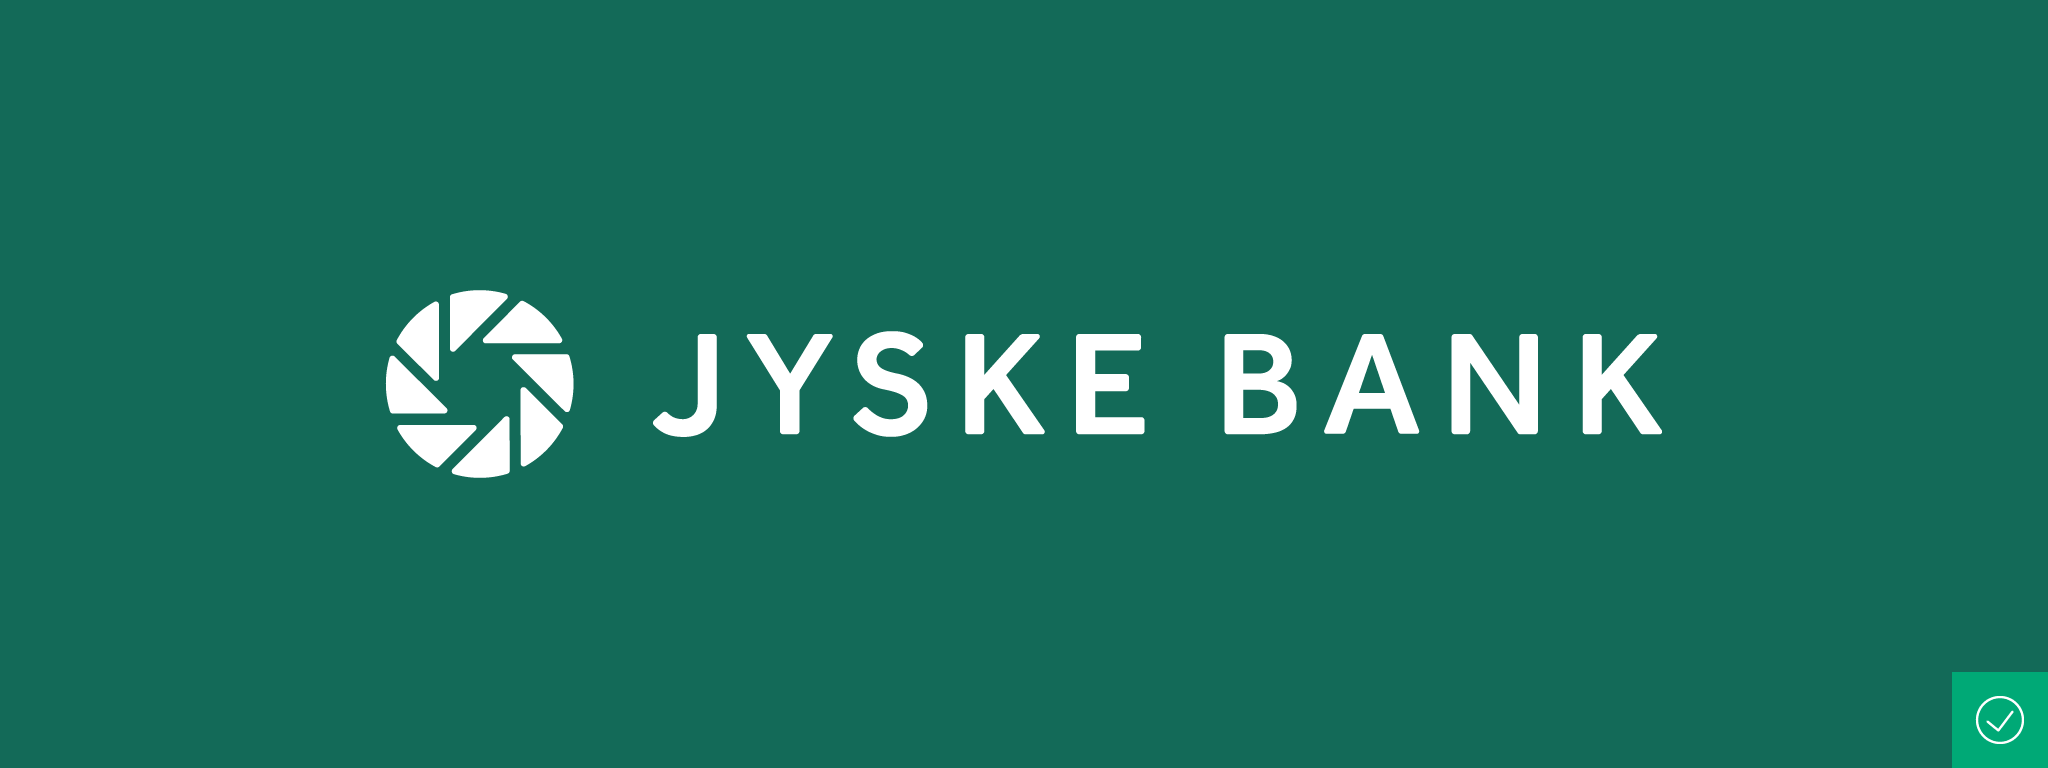 Jyske Bank Thisted